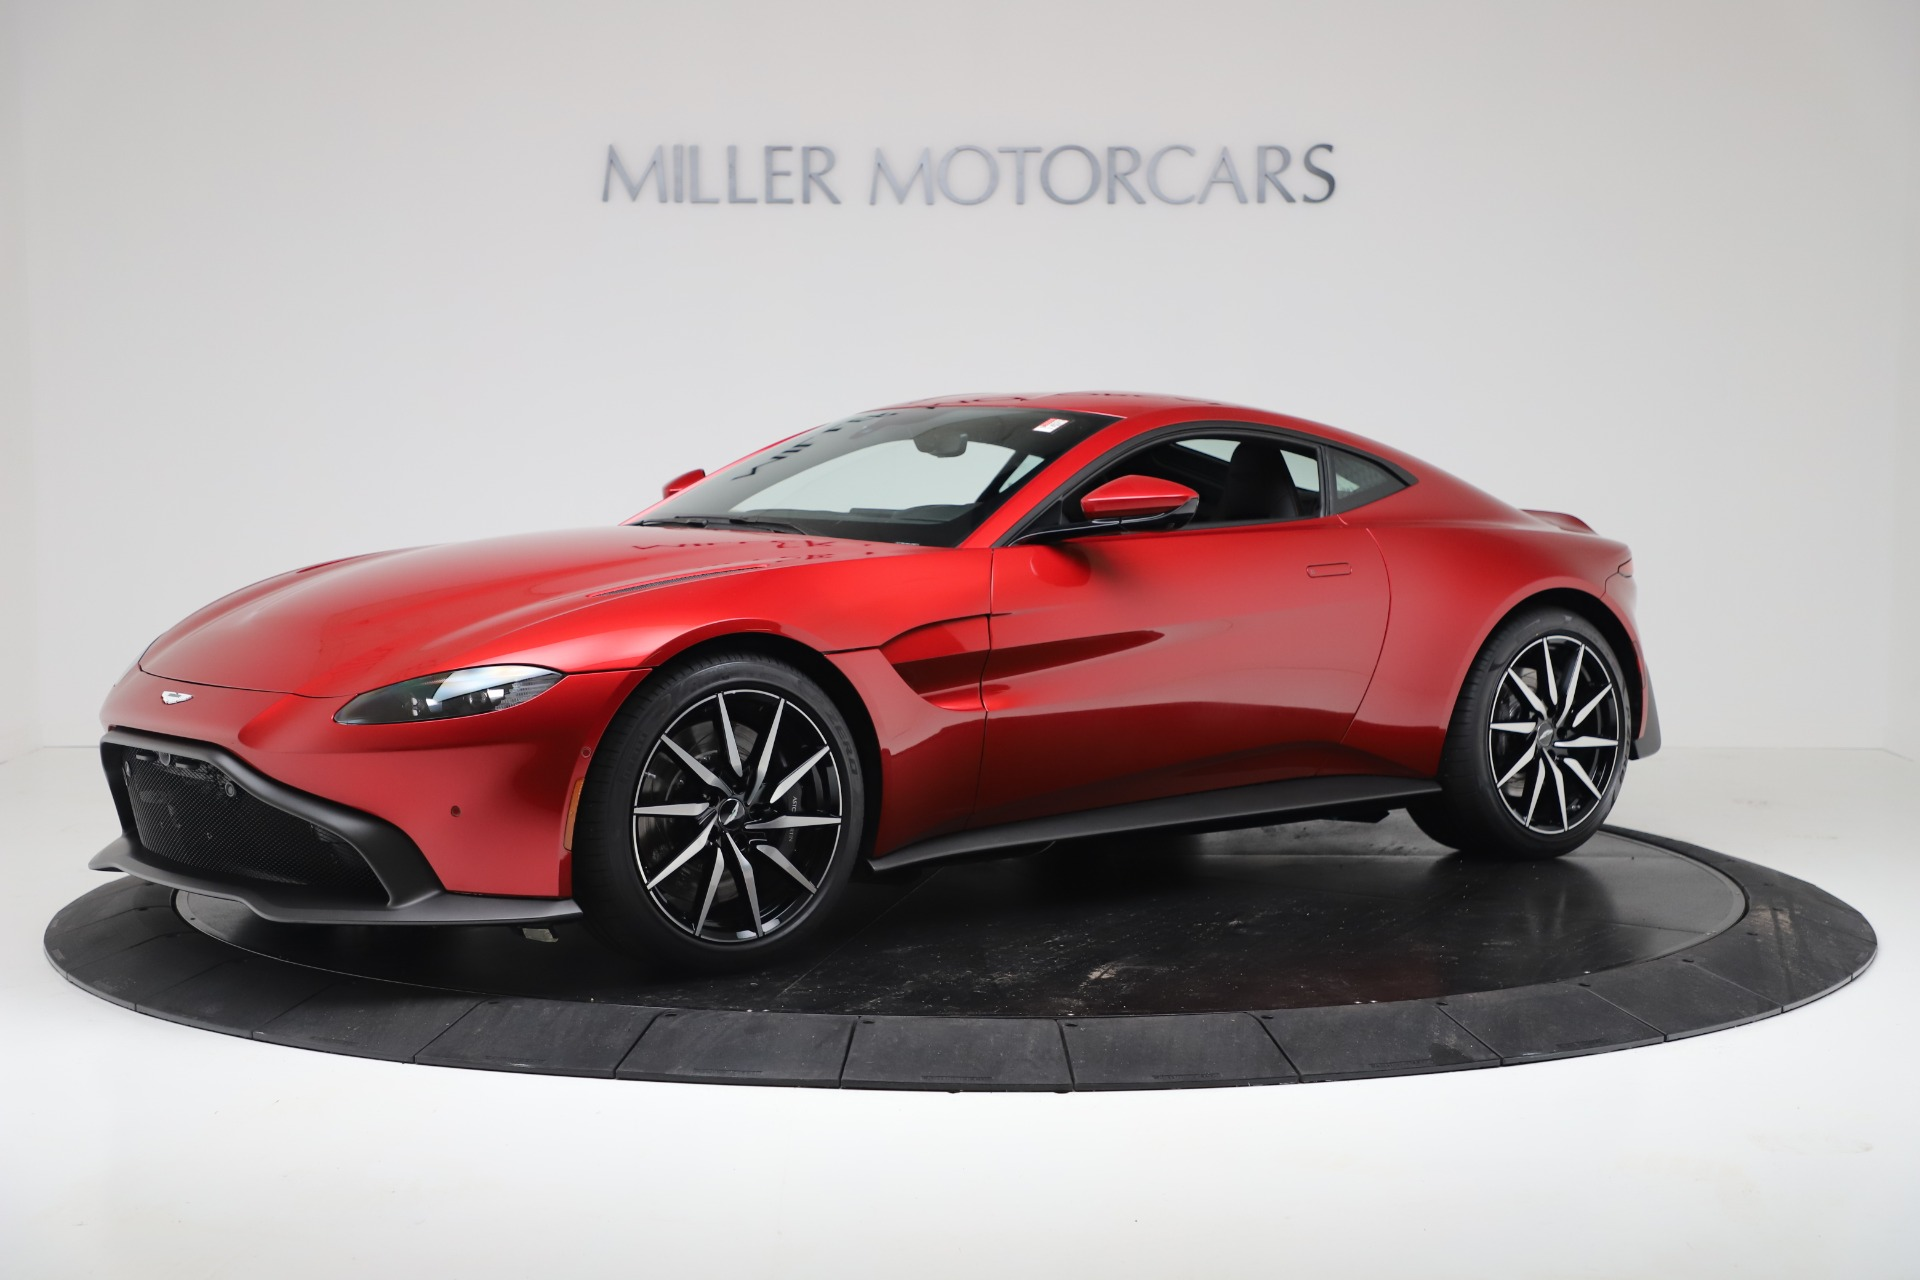 New 2020 Aston Martin Vantage V8 For Sale In Westport, CT 3343_main